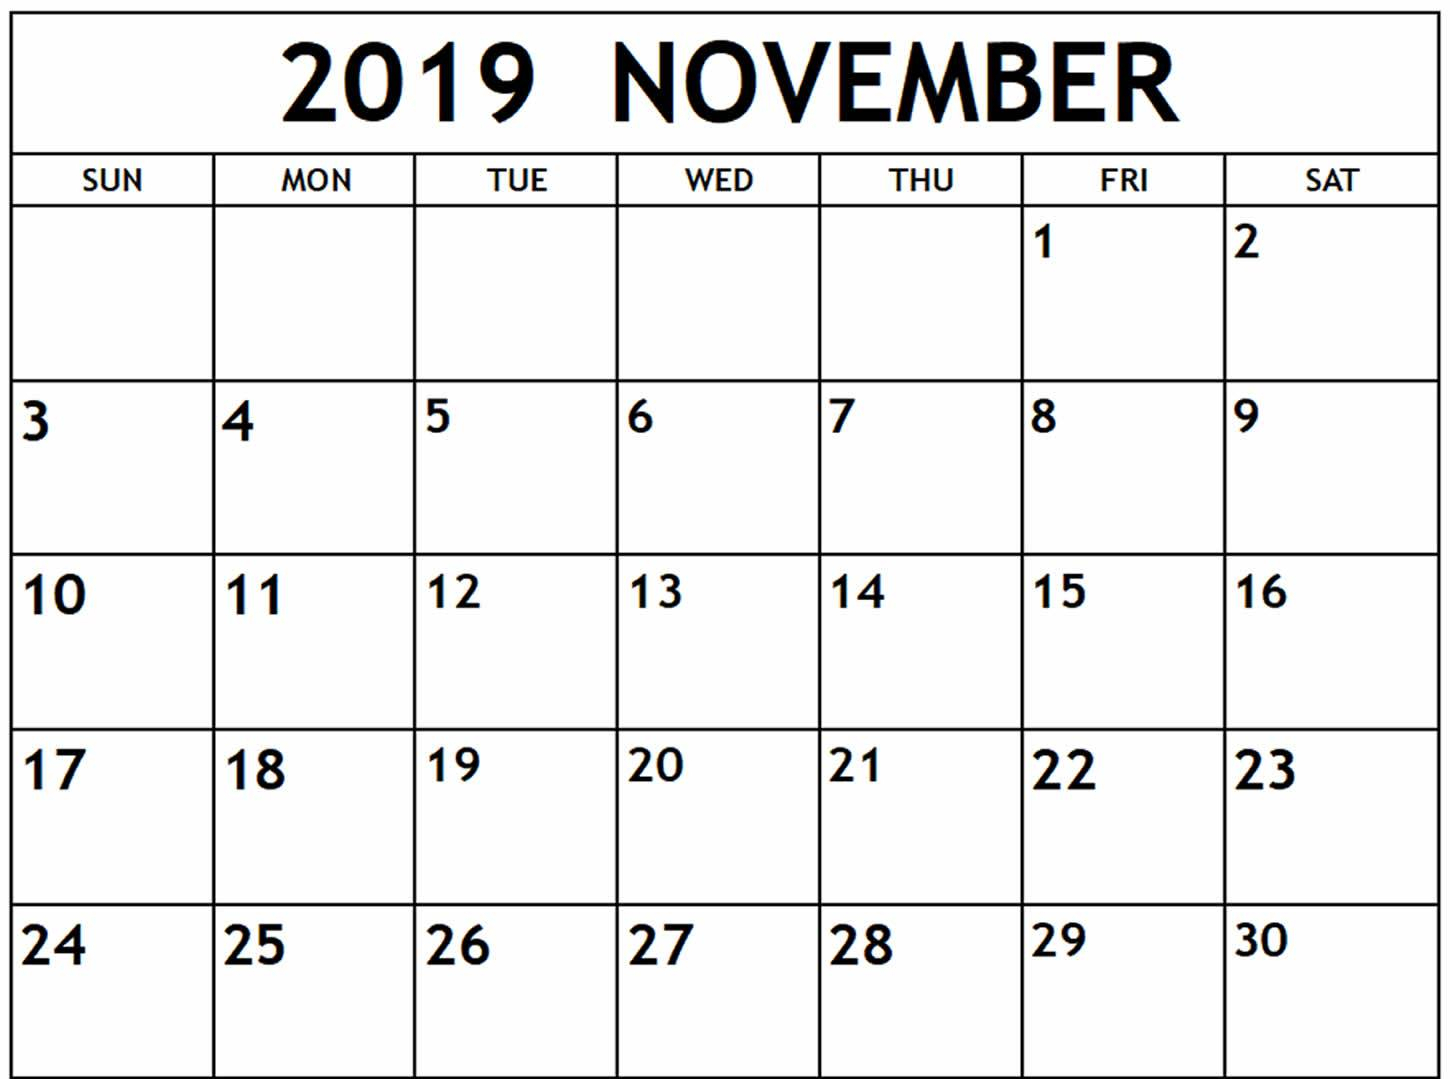 November 2019 Calendar Pdf, Word, Excel Template